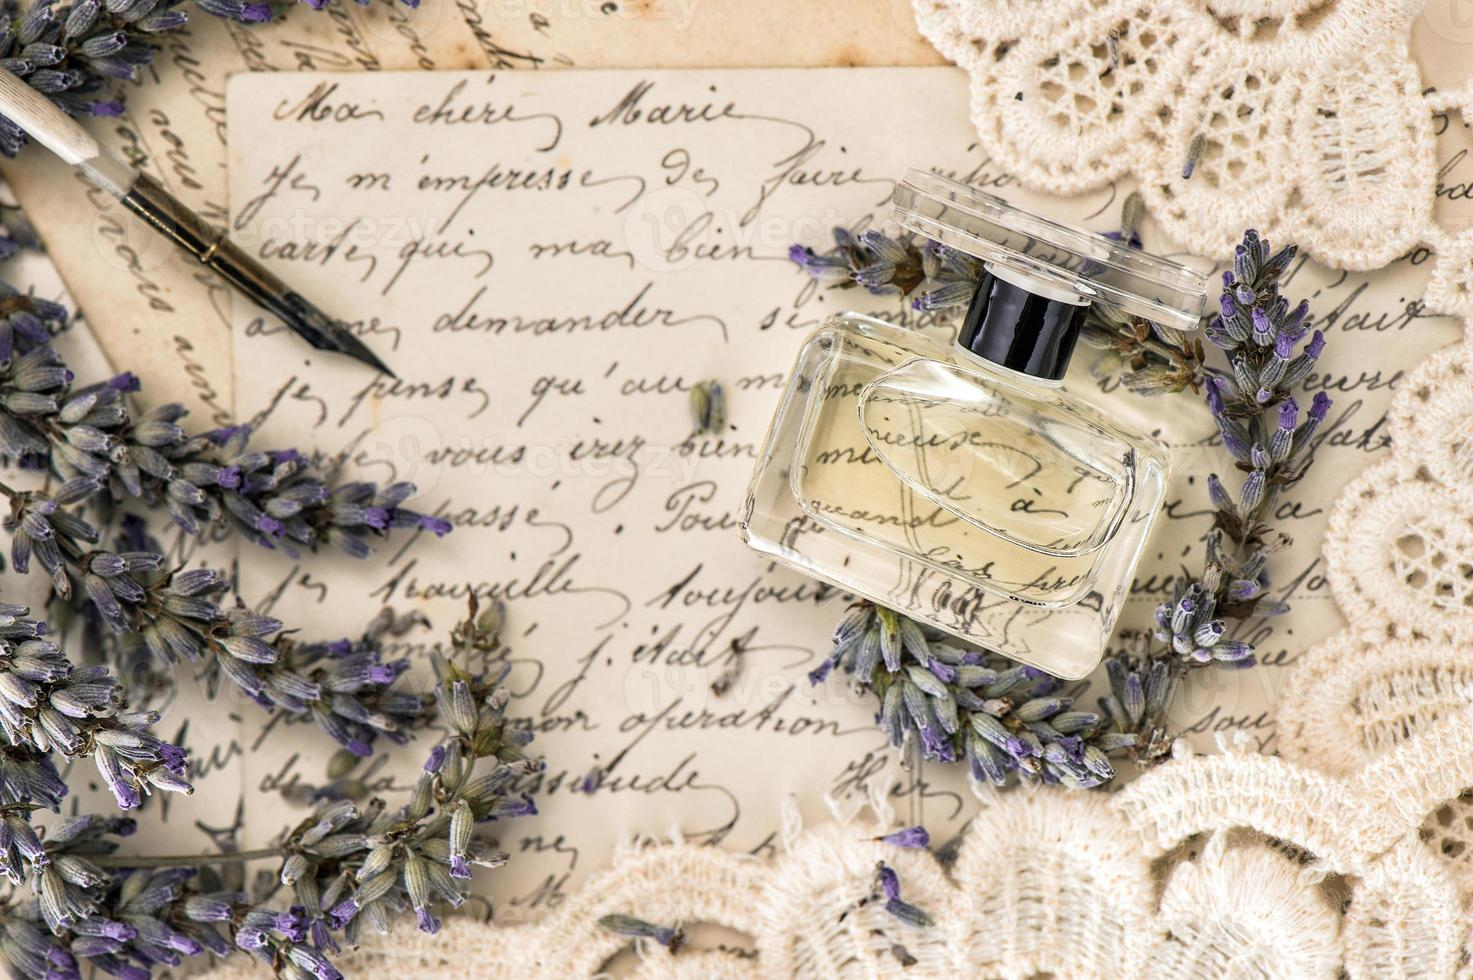 perfume, lavender flowers, vintage ink pen and old love letters photo